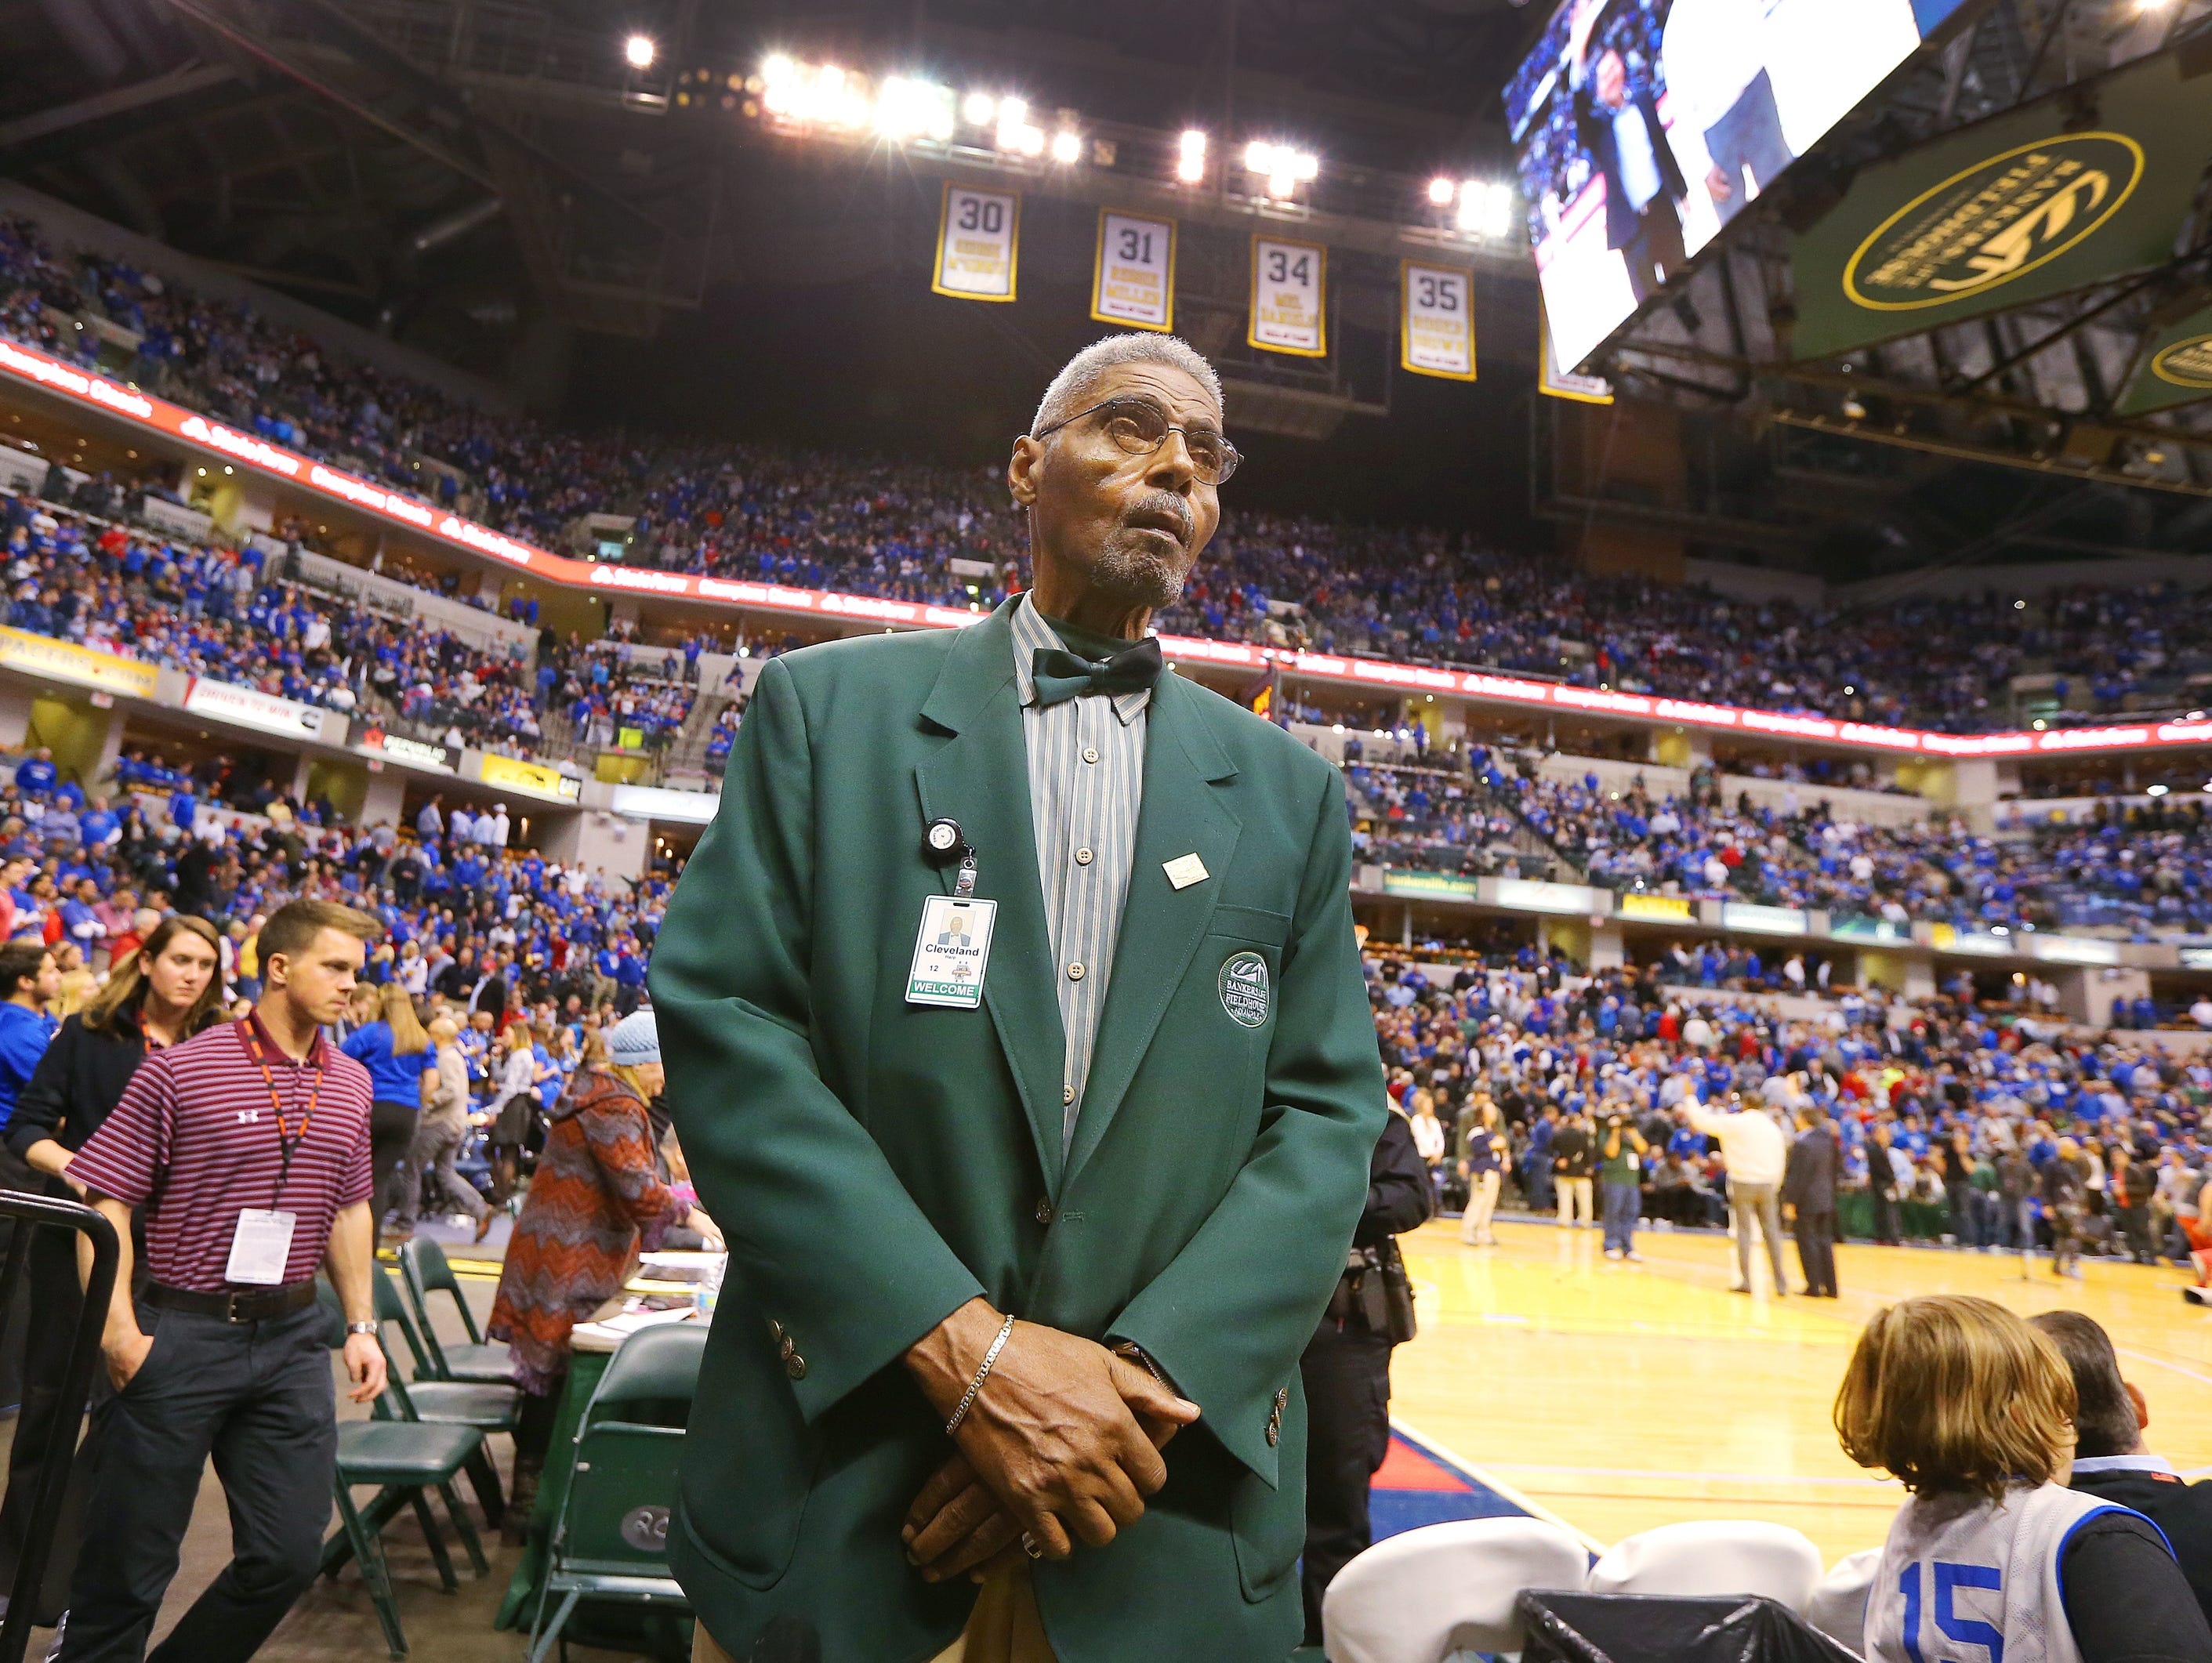 Former Crispus Attucks Tiger Cleveland Harp now works the stands as an usher at Bankers Life Fieldhouse. He's a candidate for the Indiana Basketball Hall of Fame.